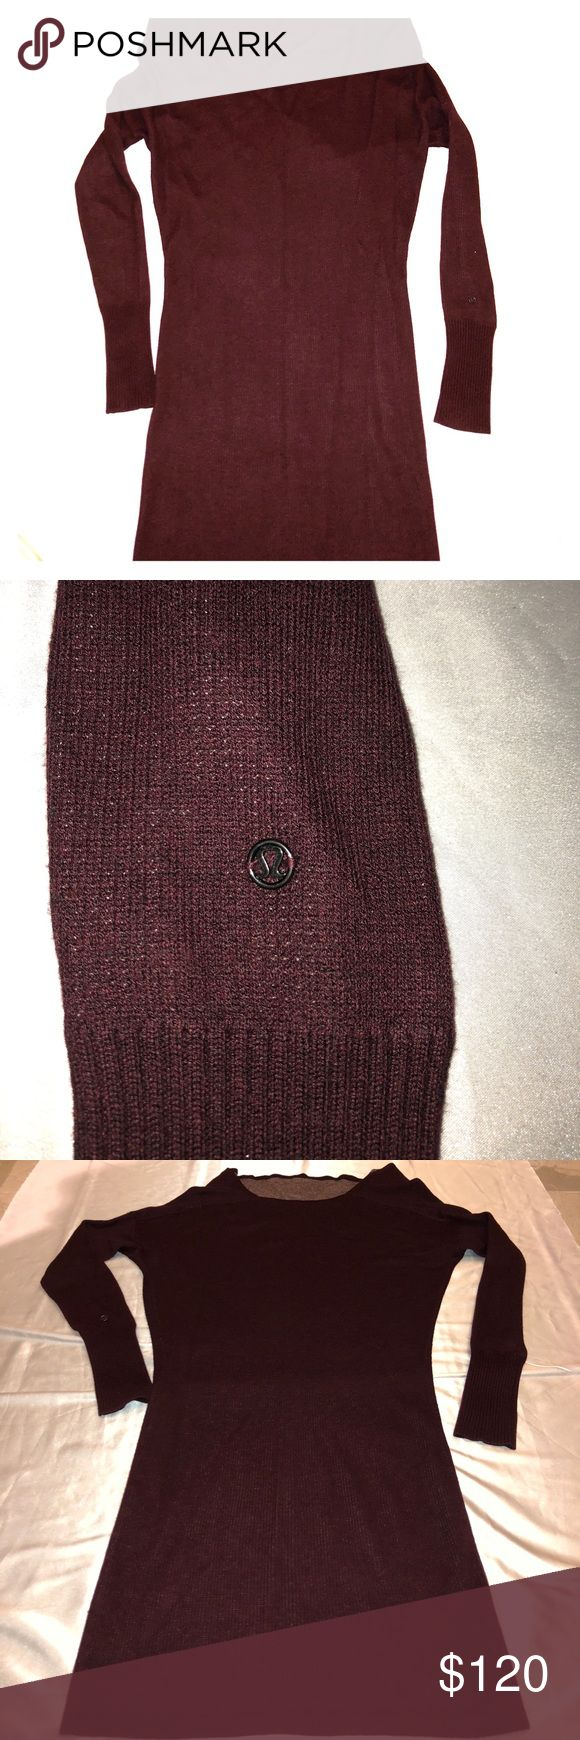 LULULEMON Reversible Serenity Sweater Dress Wrap Color is Heathered Bordeaux Drama on one side, Heathered Pretty Pink on the other. Can be worn as a tunic, a sweater or a dress. And runs a little big like the Scuba lone. No pilling or damage. Almost Mint Condition. lululemon athletica Sweaters